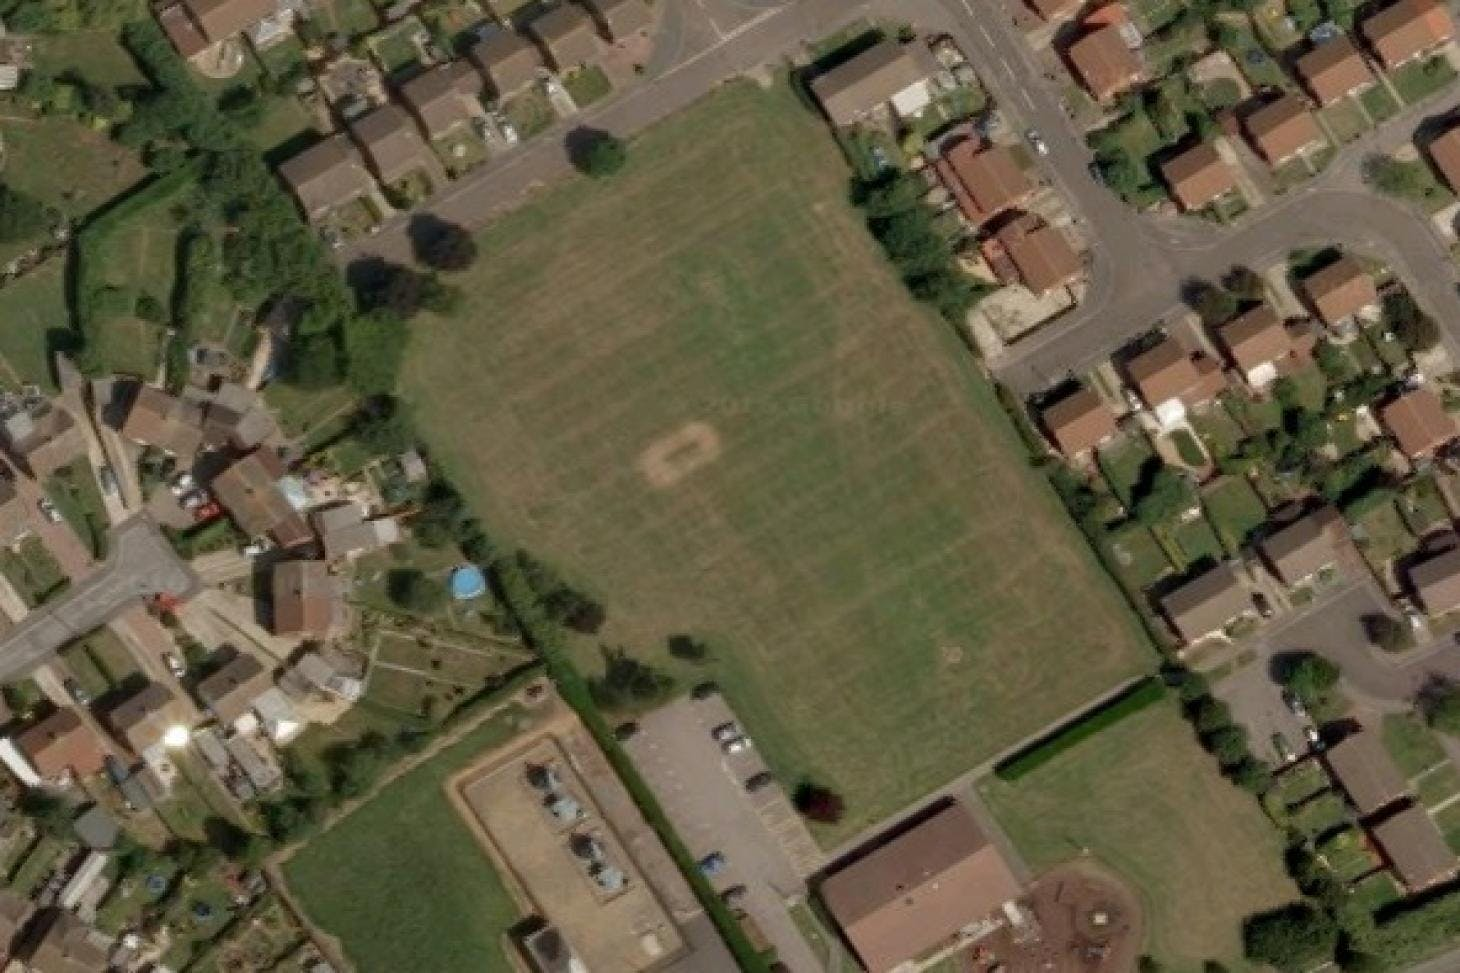 Raynham Way Recreation Ground 5 a side | Astroturf football pitch